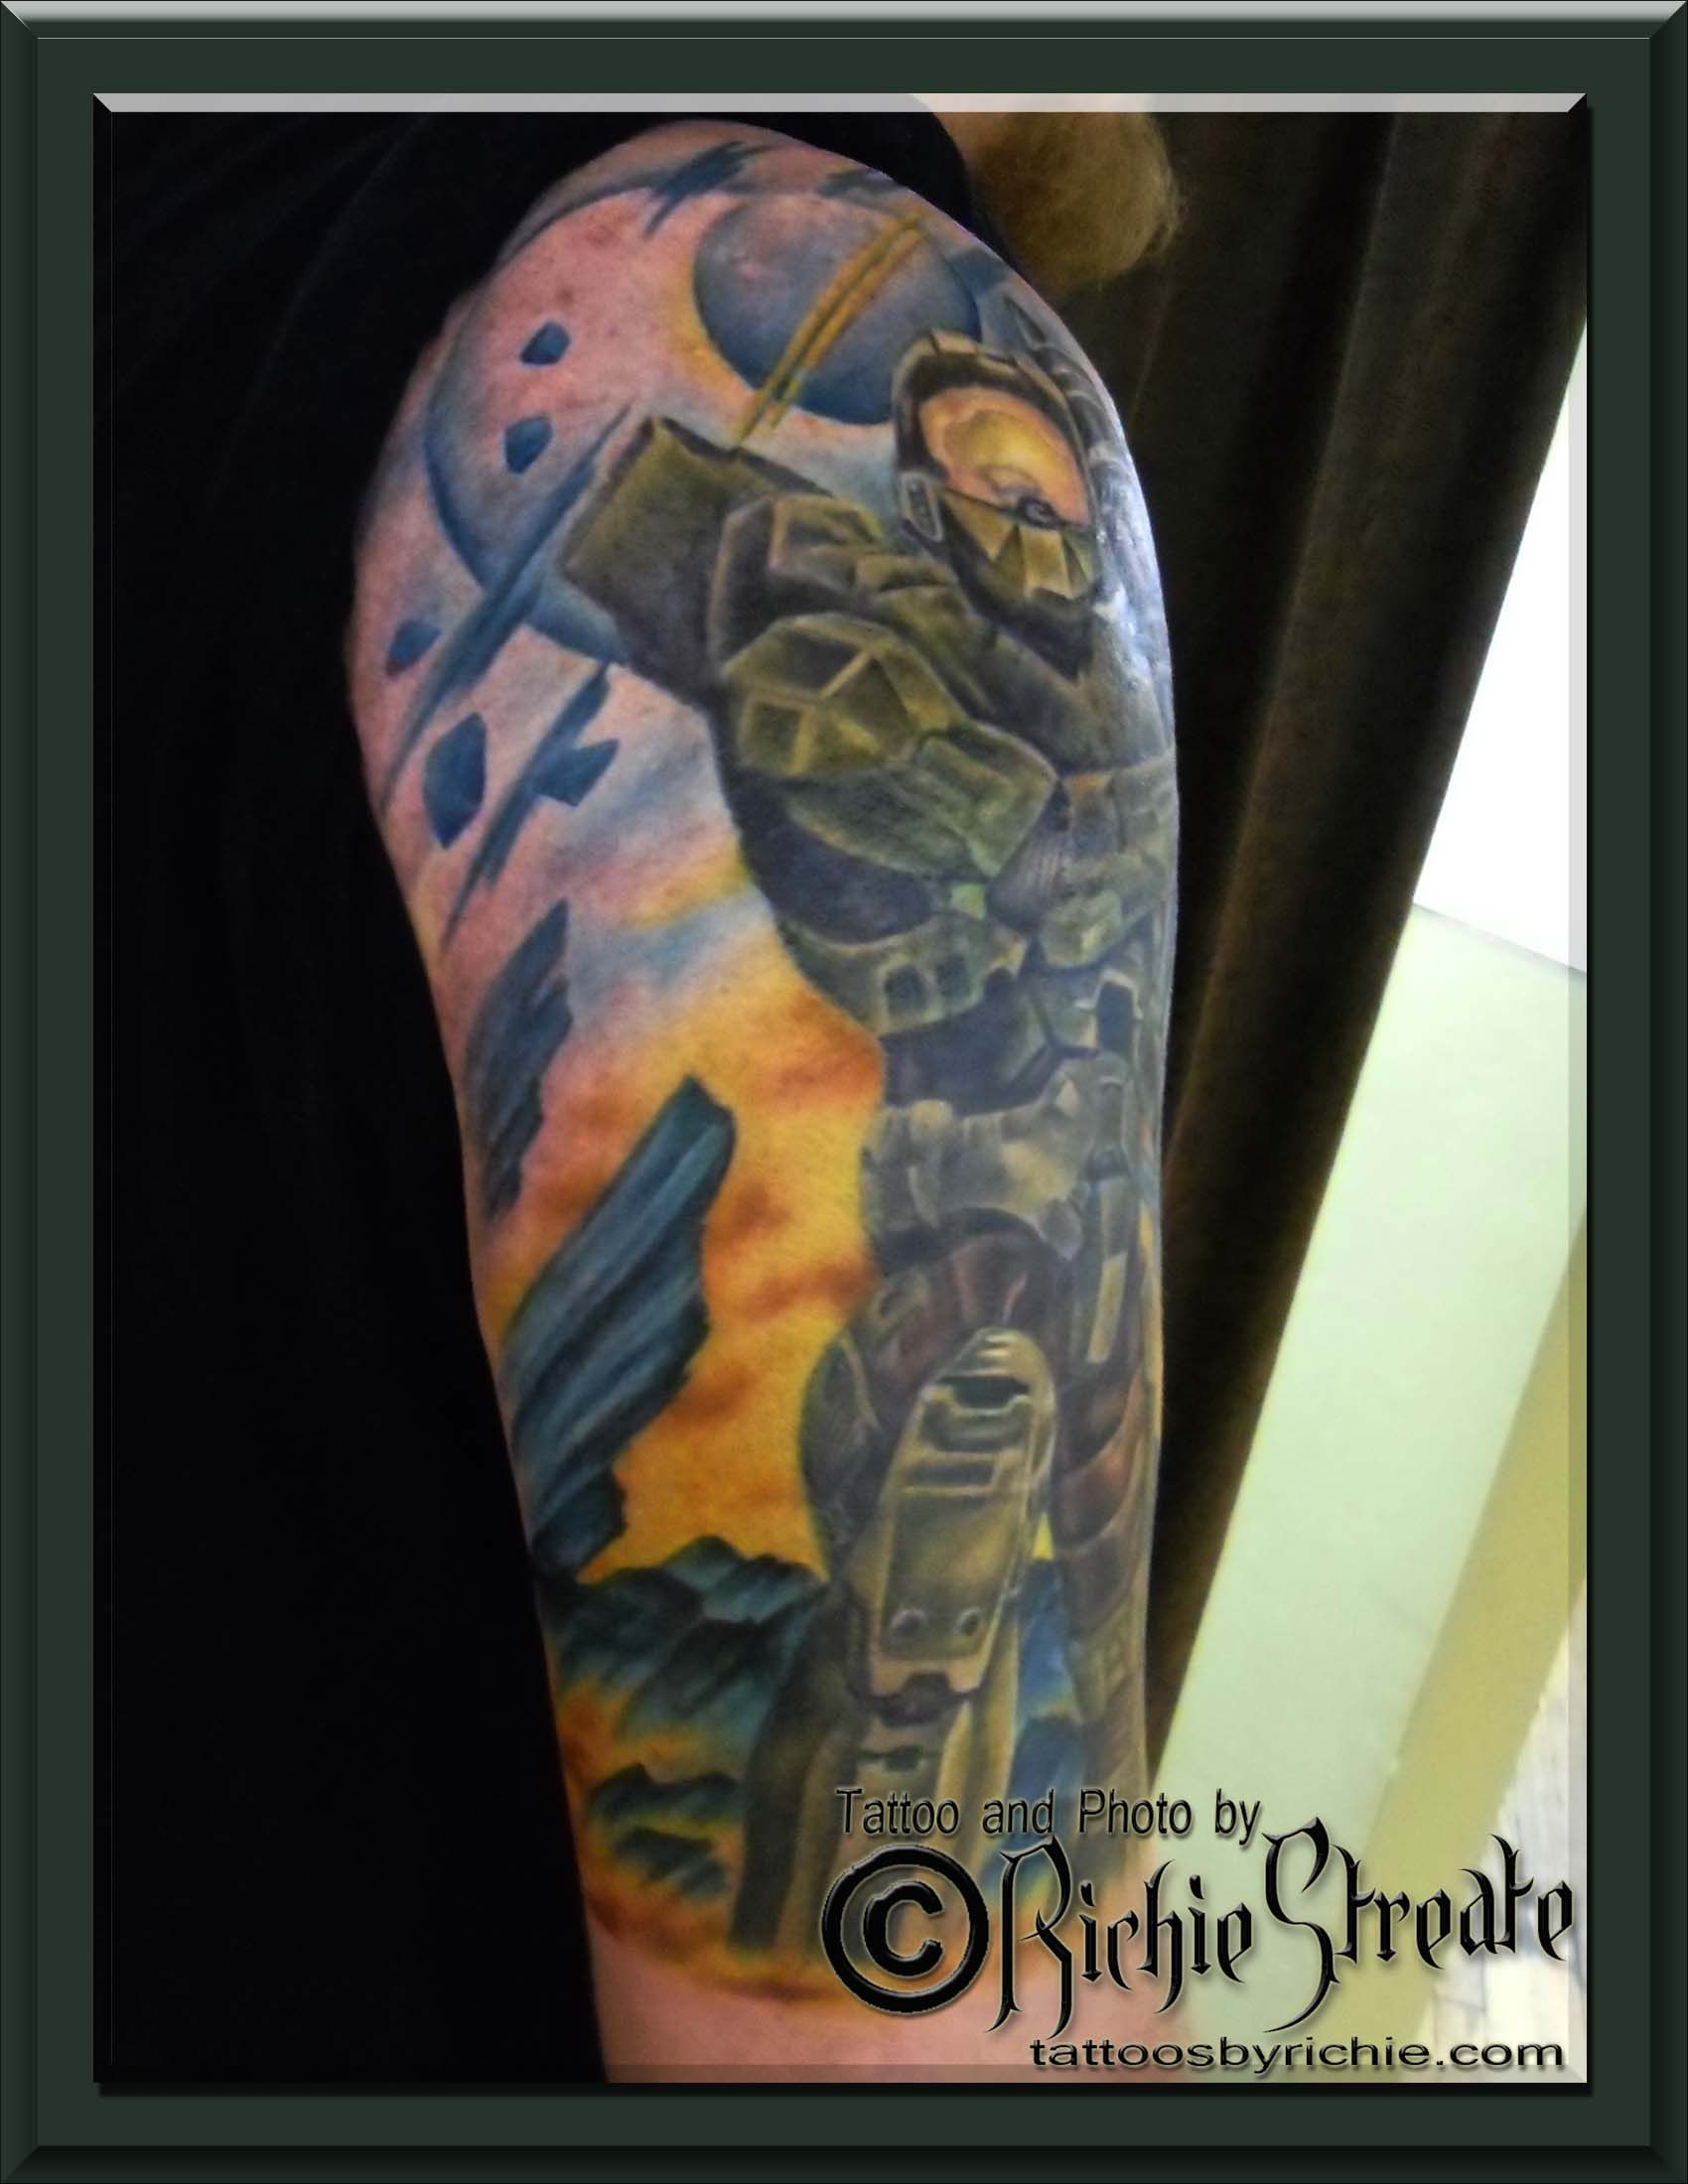 Halo 3 Master Chief Tattoo Tattoo S By Richie Streate Ideas And Designs